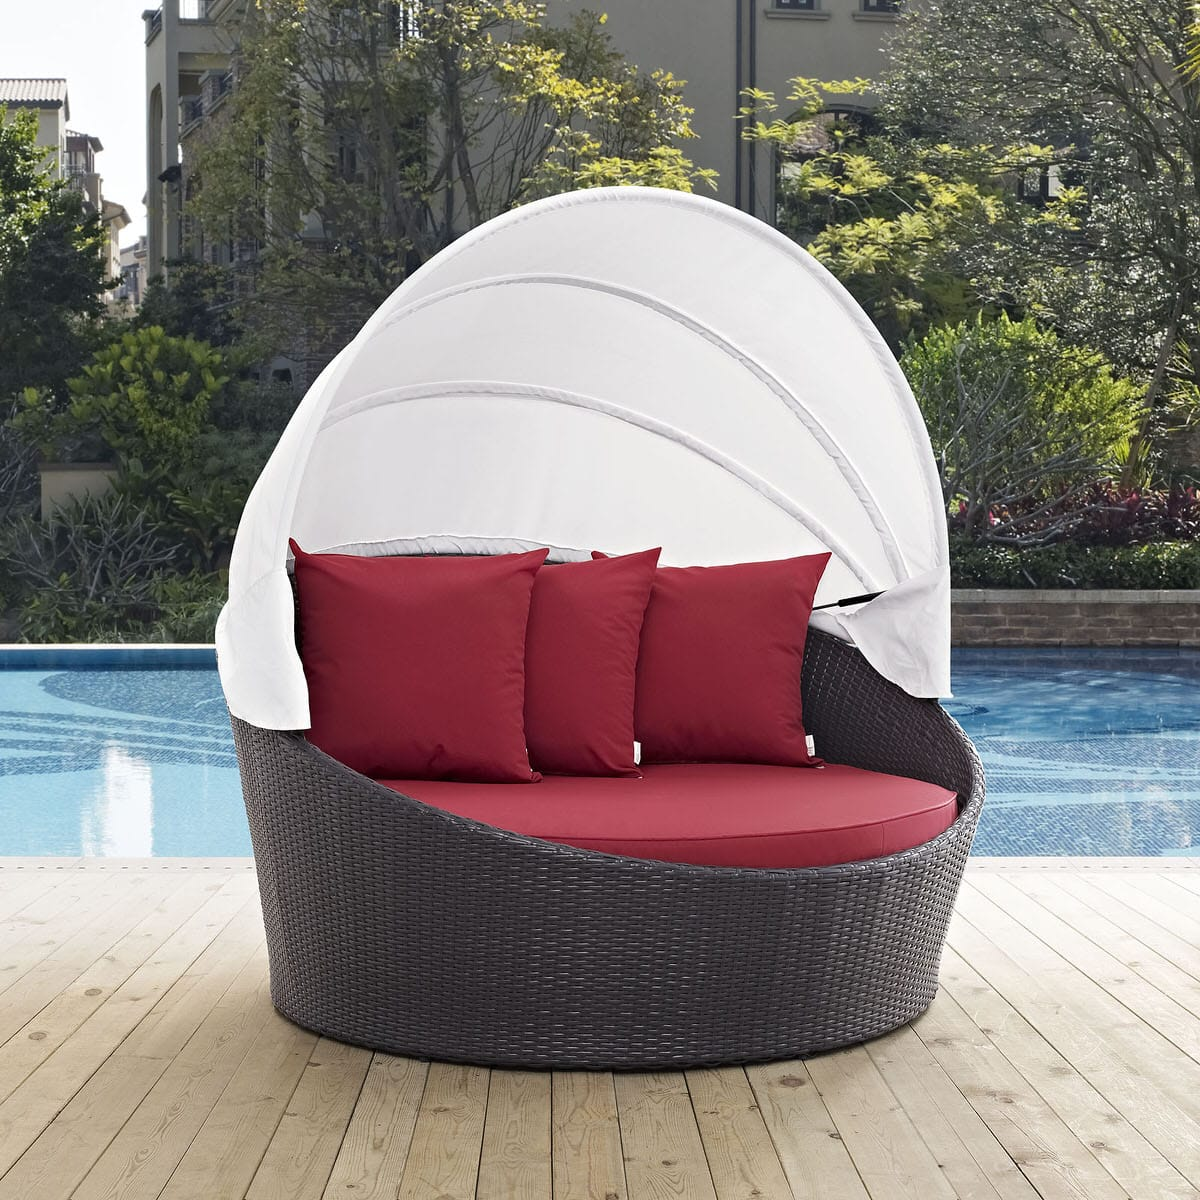 convene canopy outdoor patio daybed espresso red by modern living